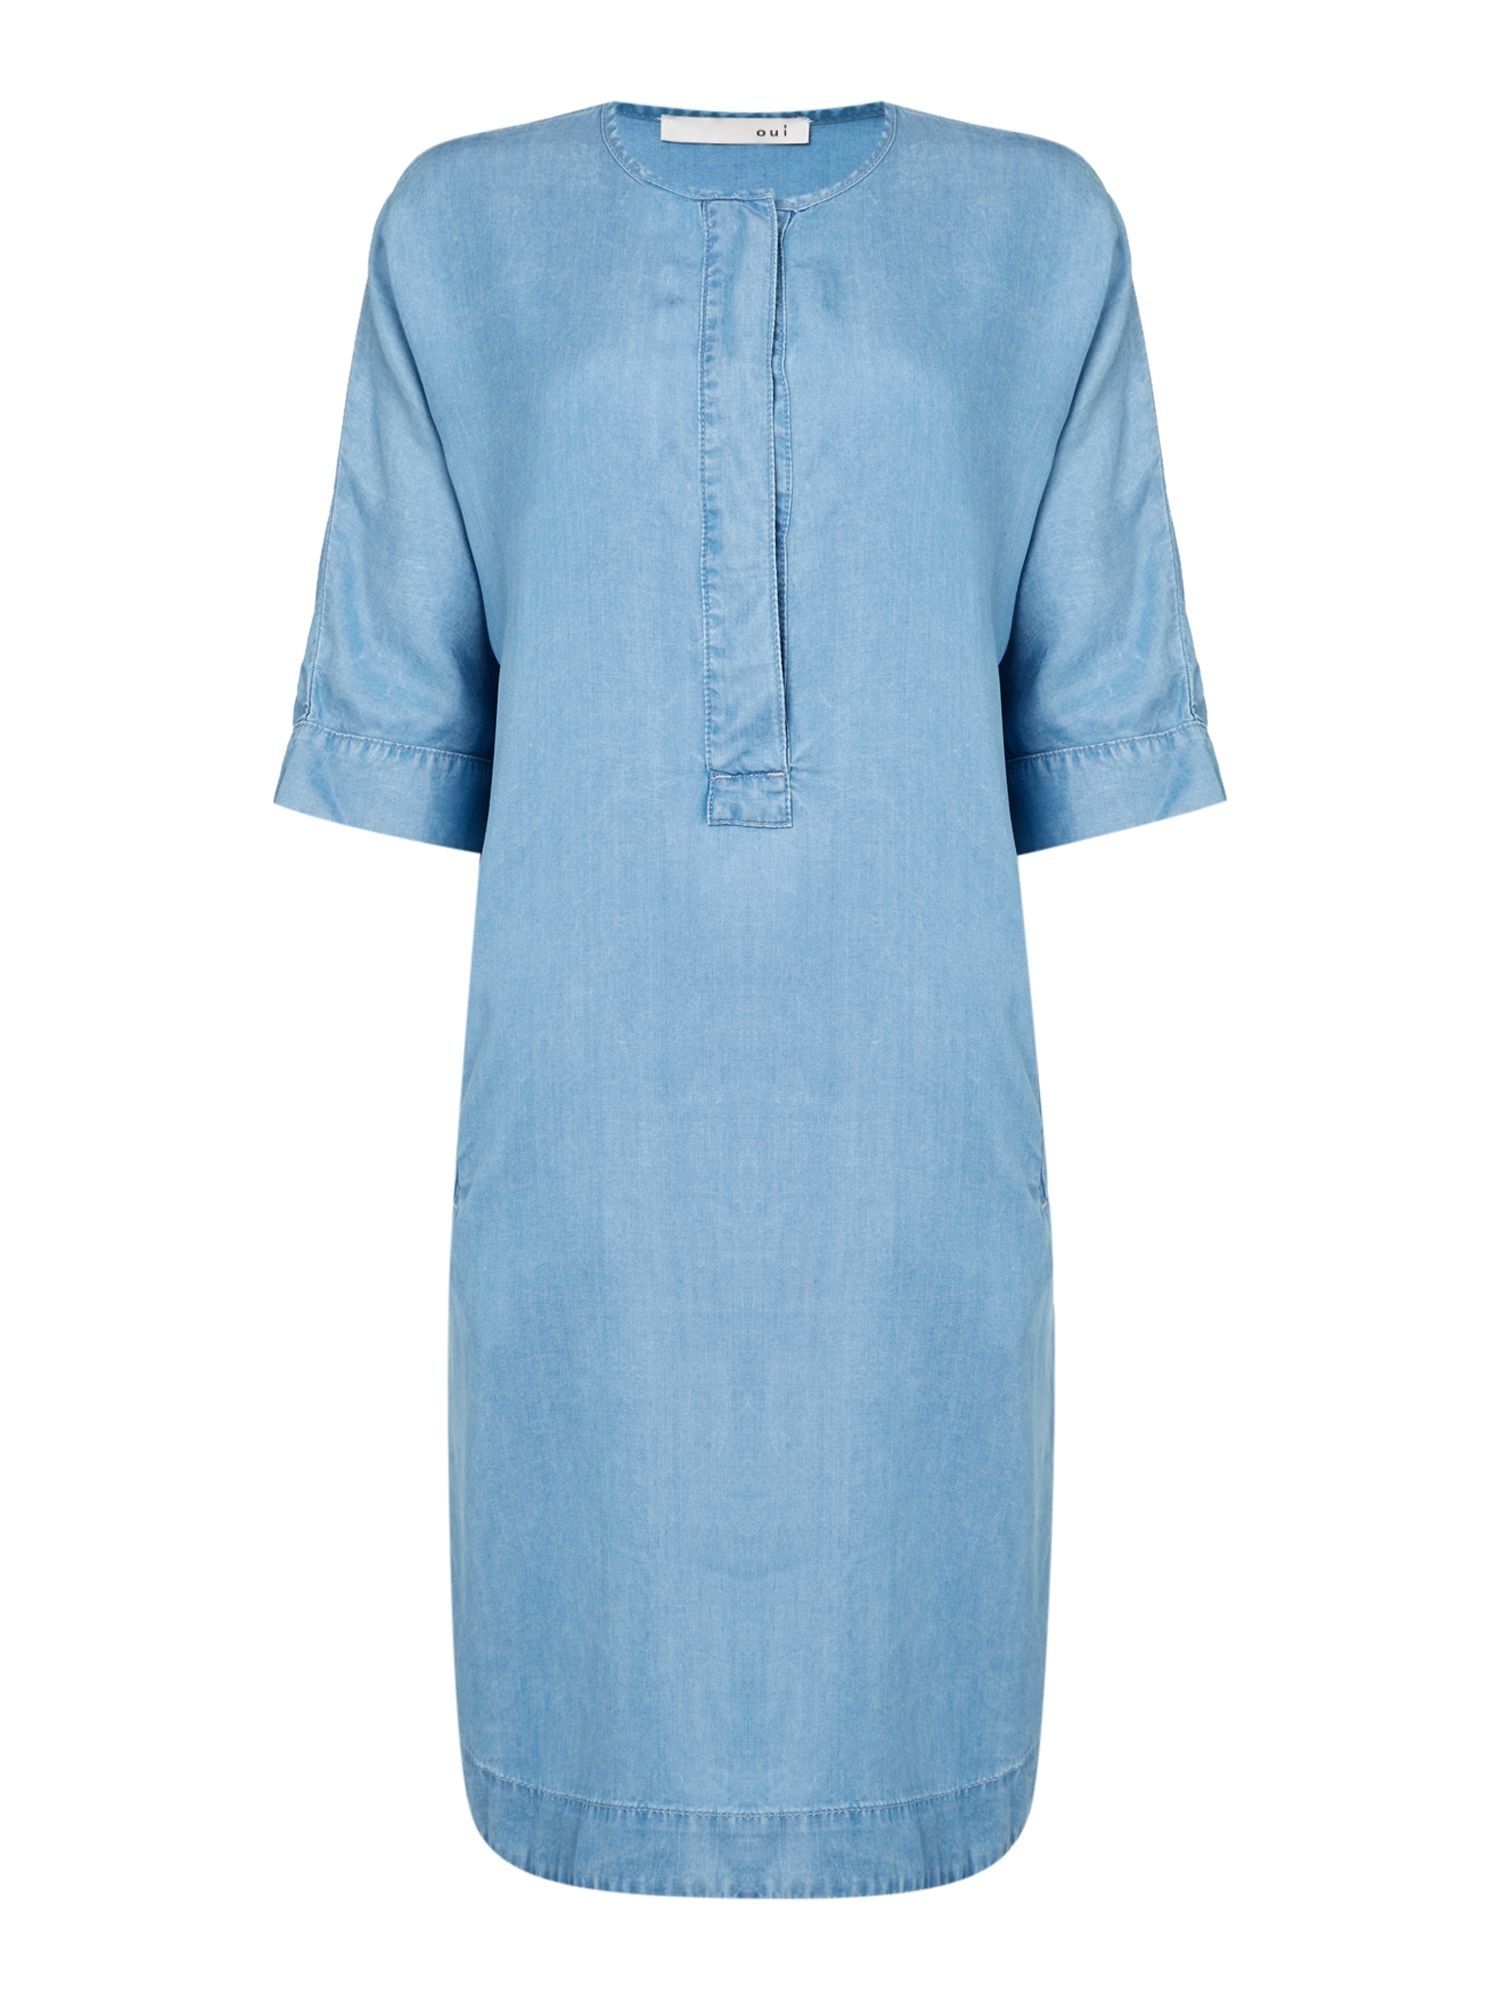 Oui Denim dress with short sleeves and button front, Blue